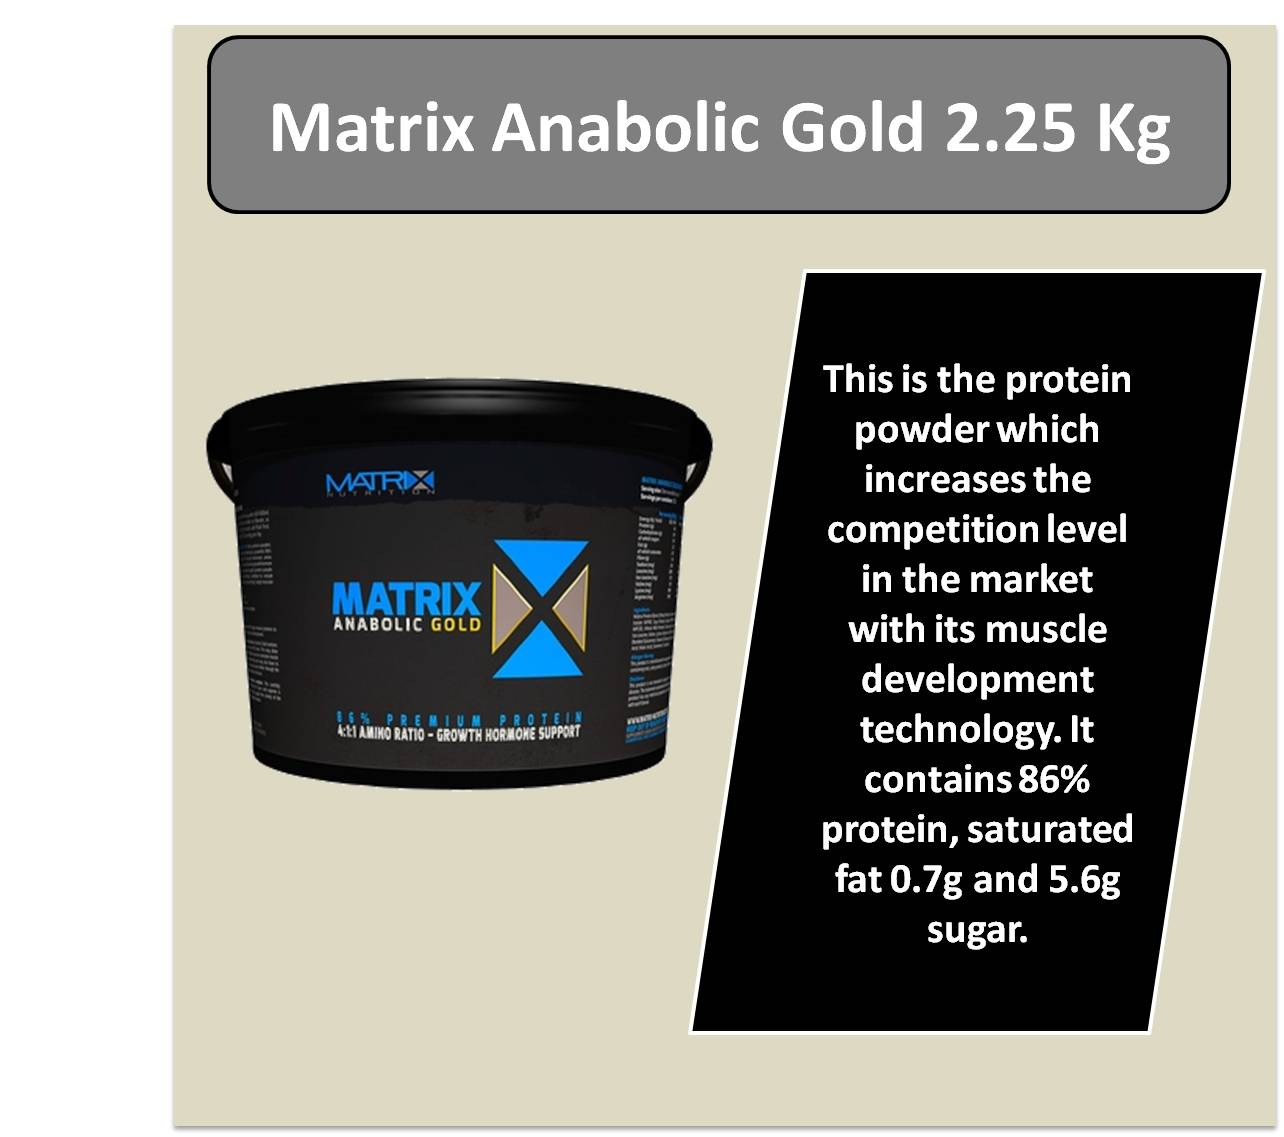 Matrix Anabolic Gold 2.25 Kg